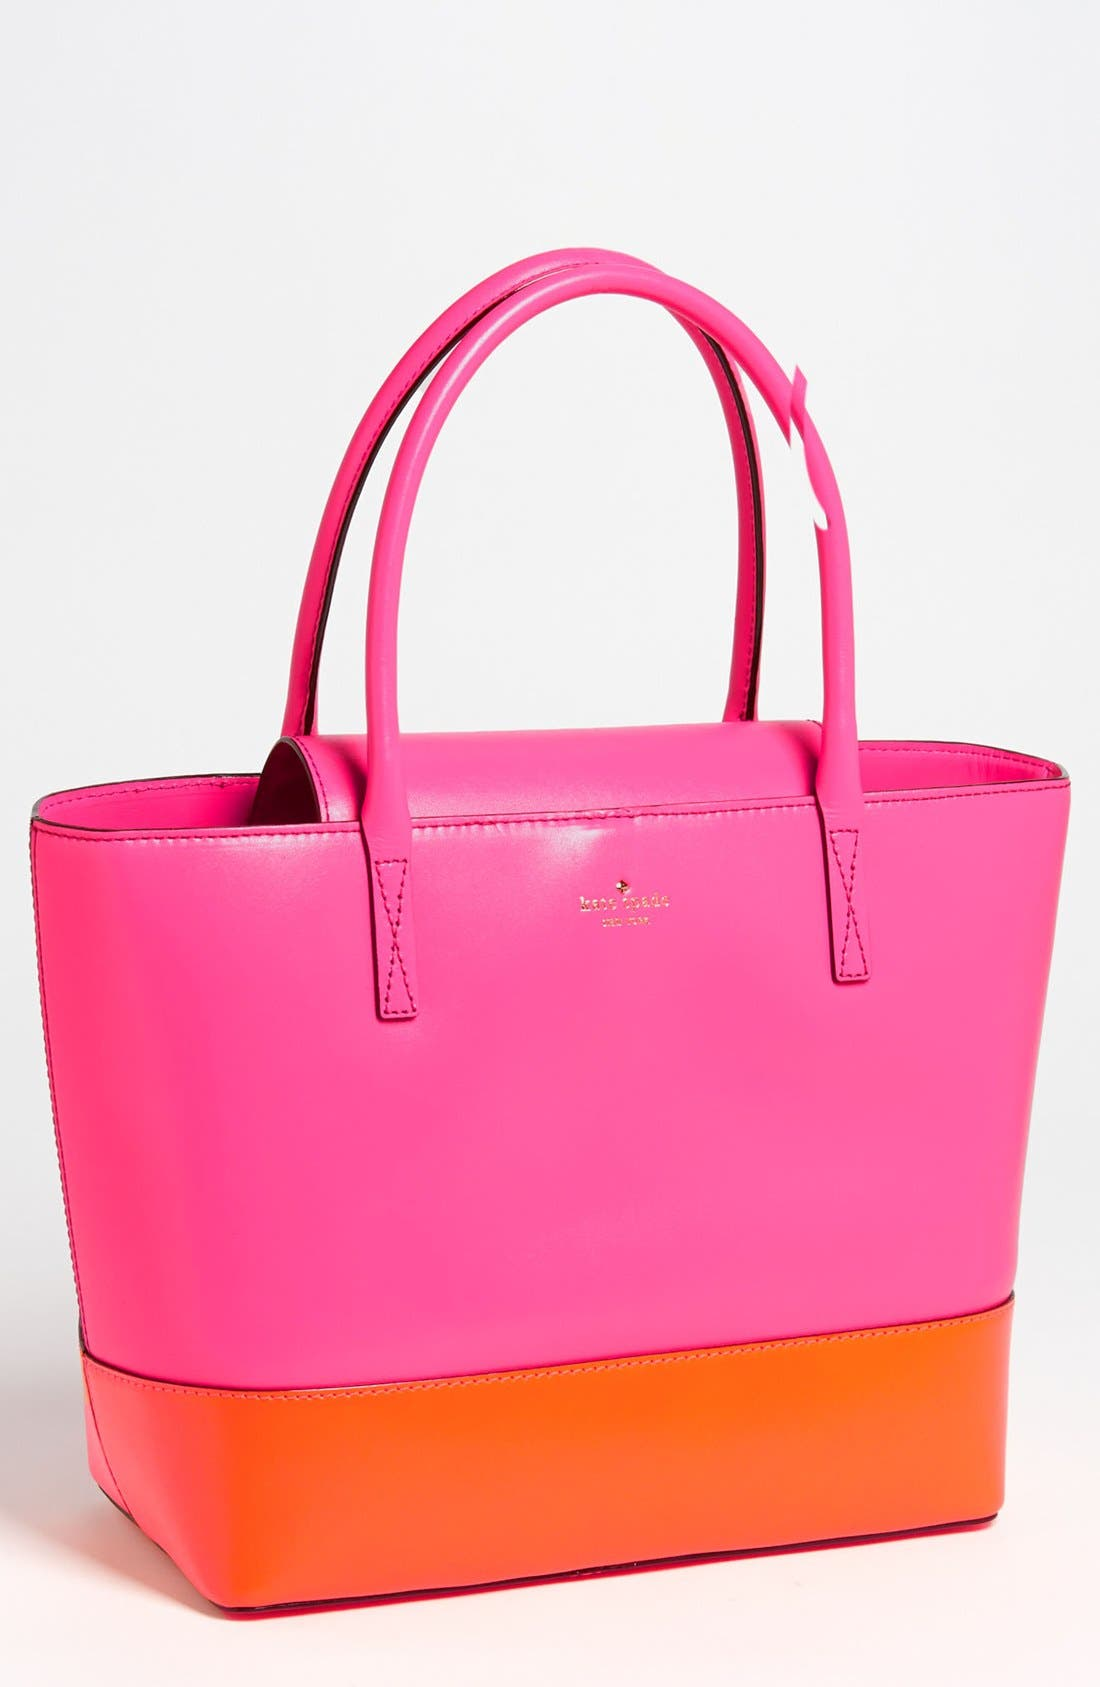 Alternate Image 1 Selected - kate spade new york 'madison park - small coal' leather tote